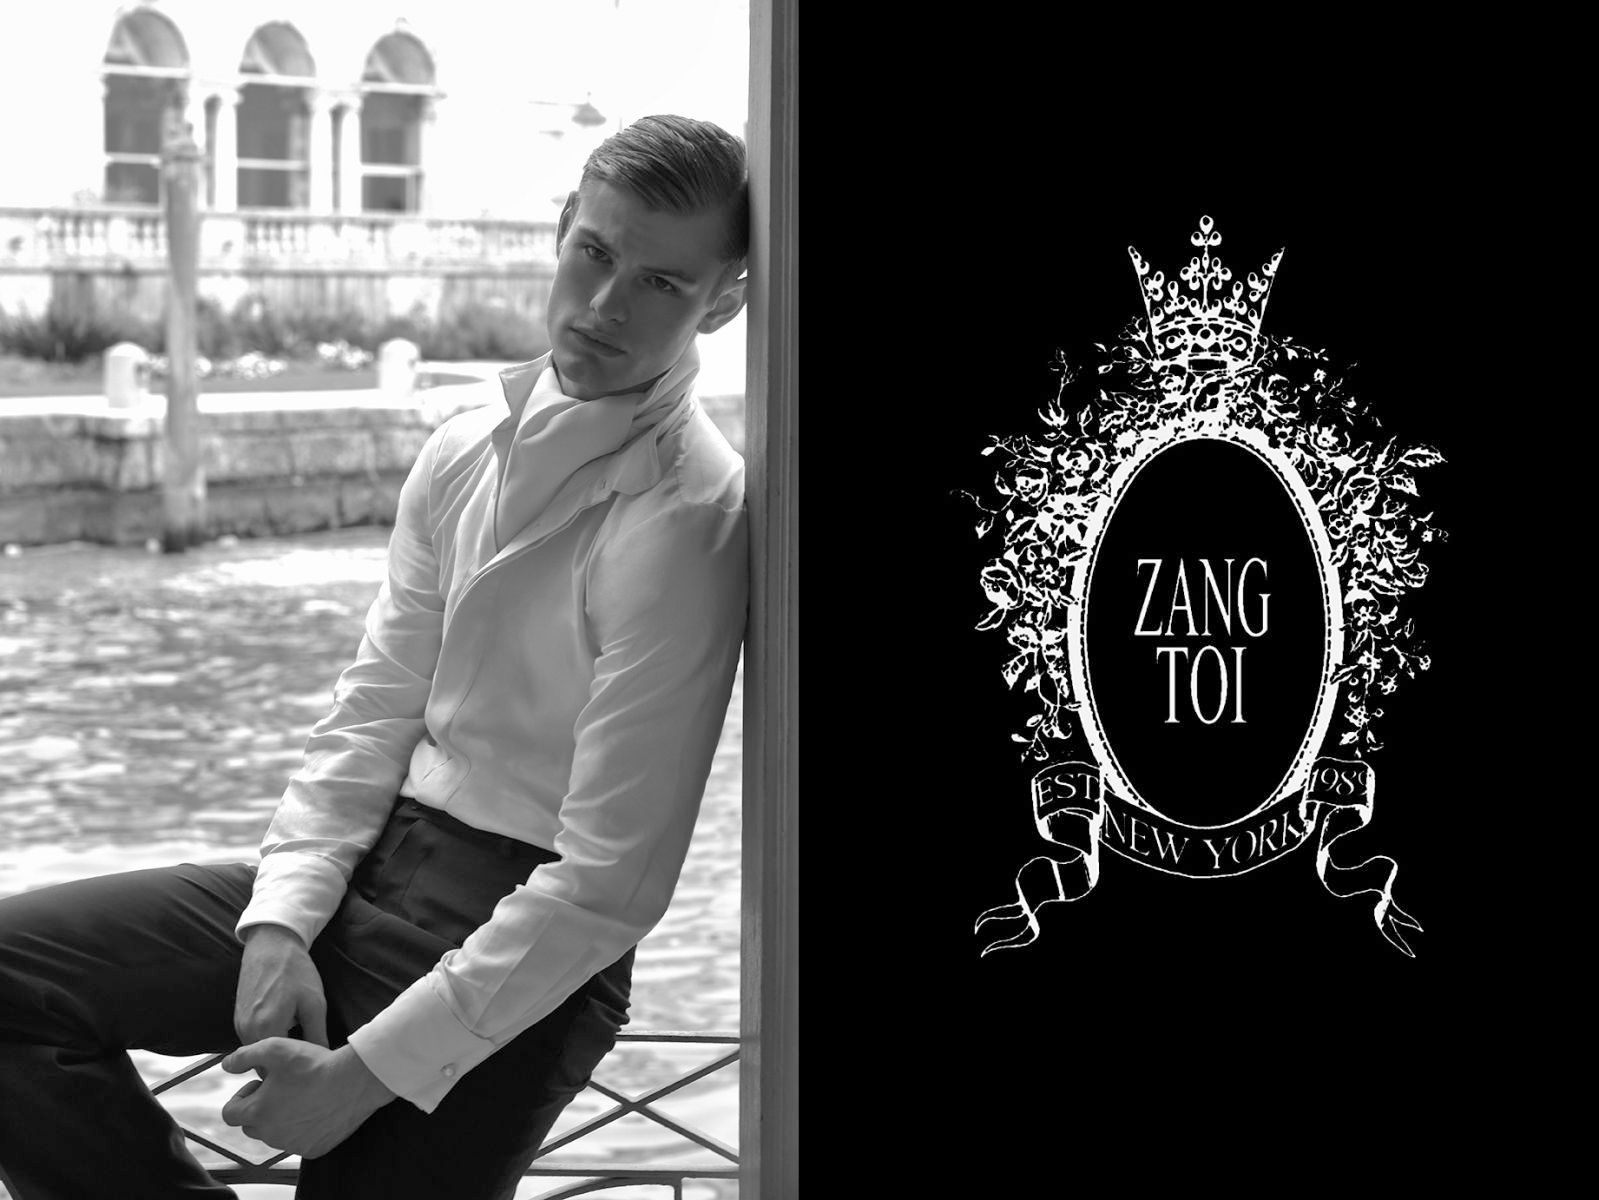 michael del buono for zang toi